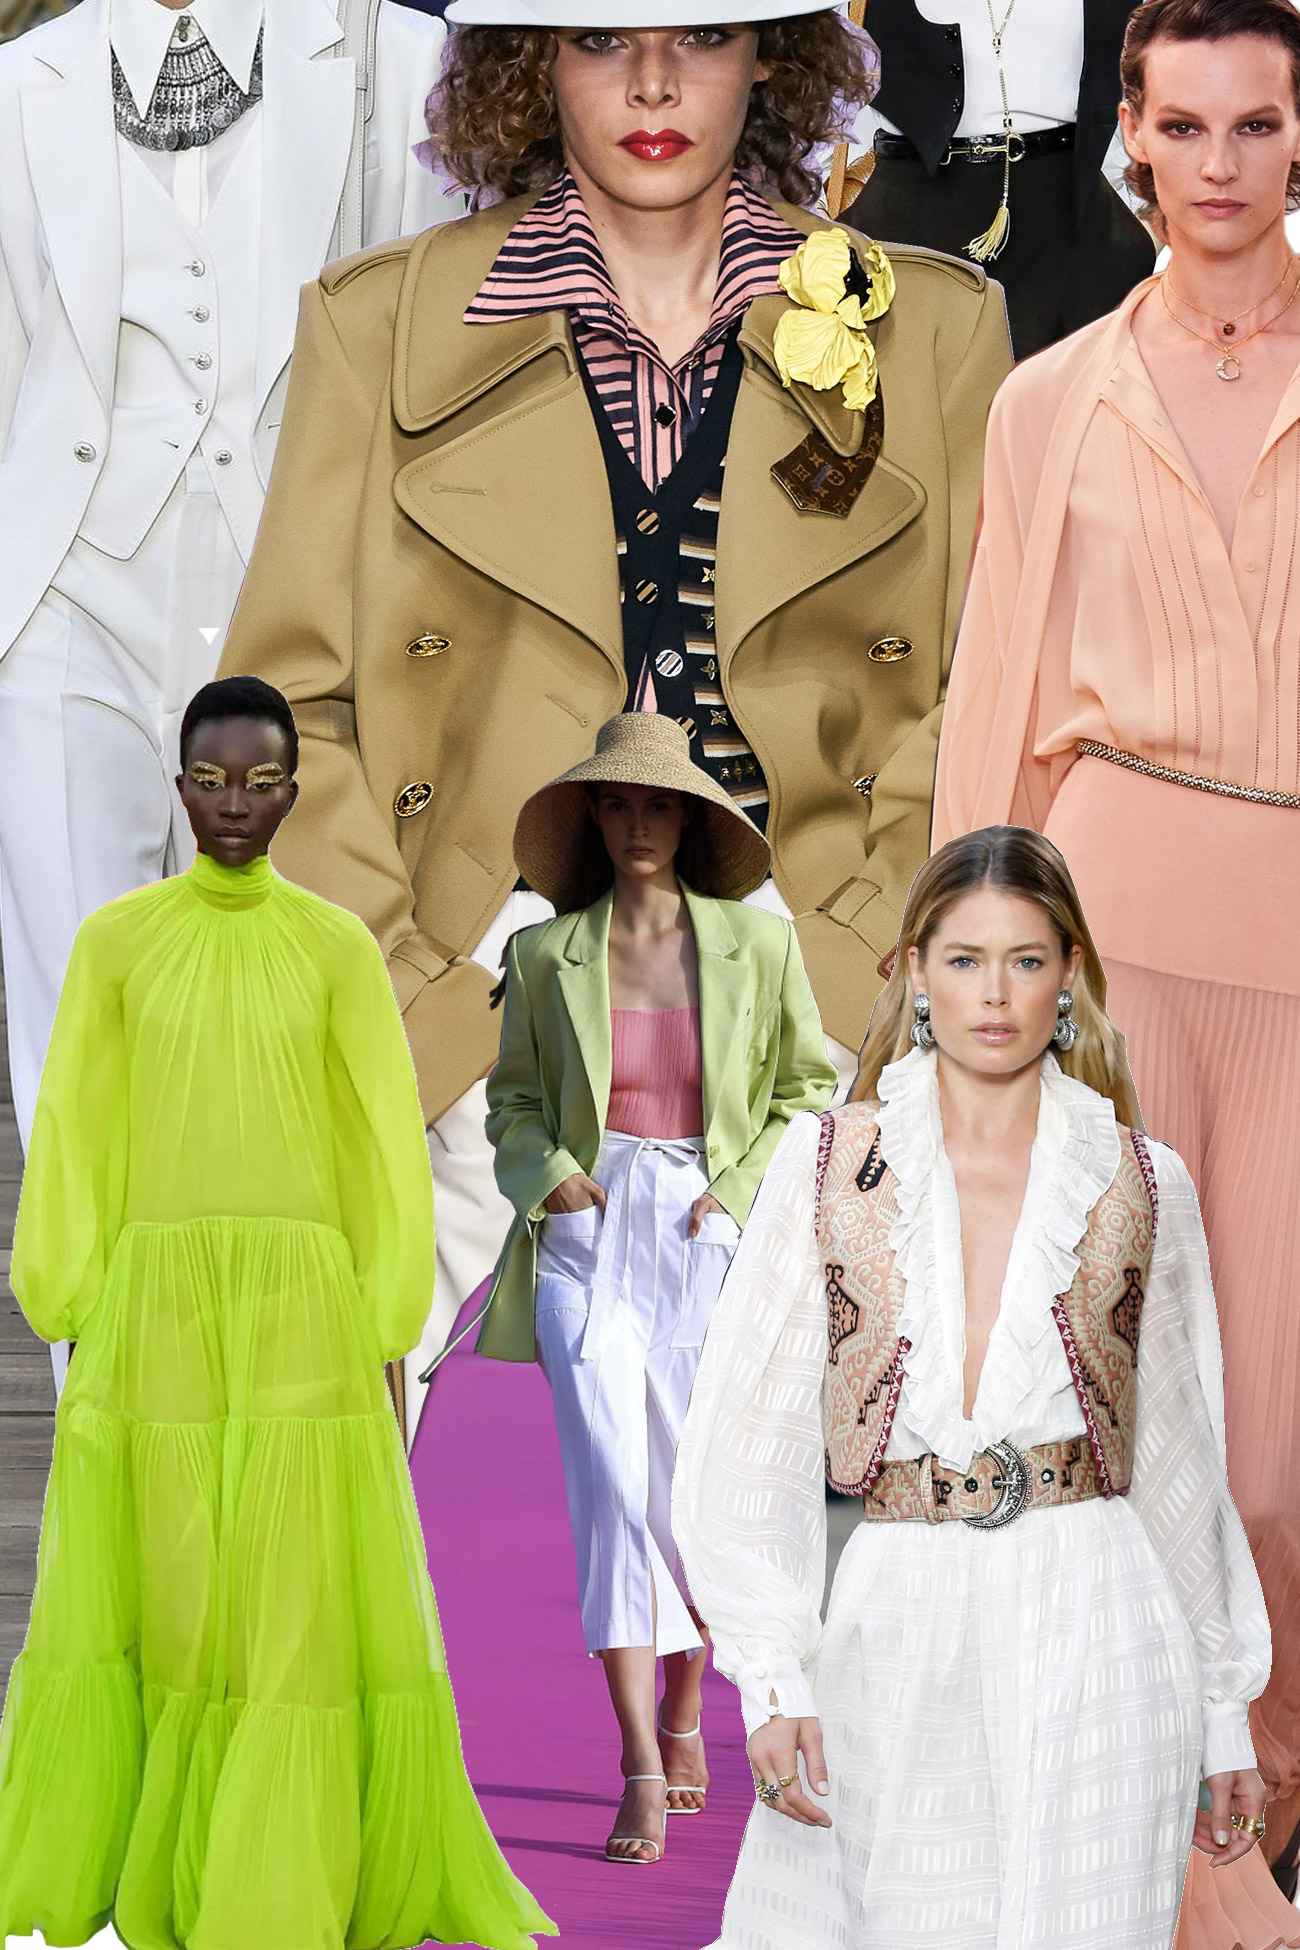 Spring/Summer 8 Fashion Trends: What To Wear This Season